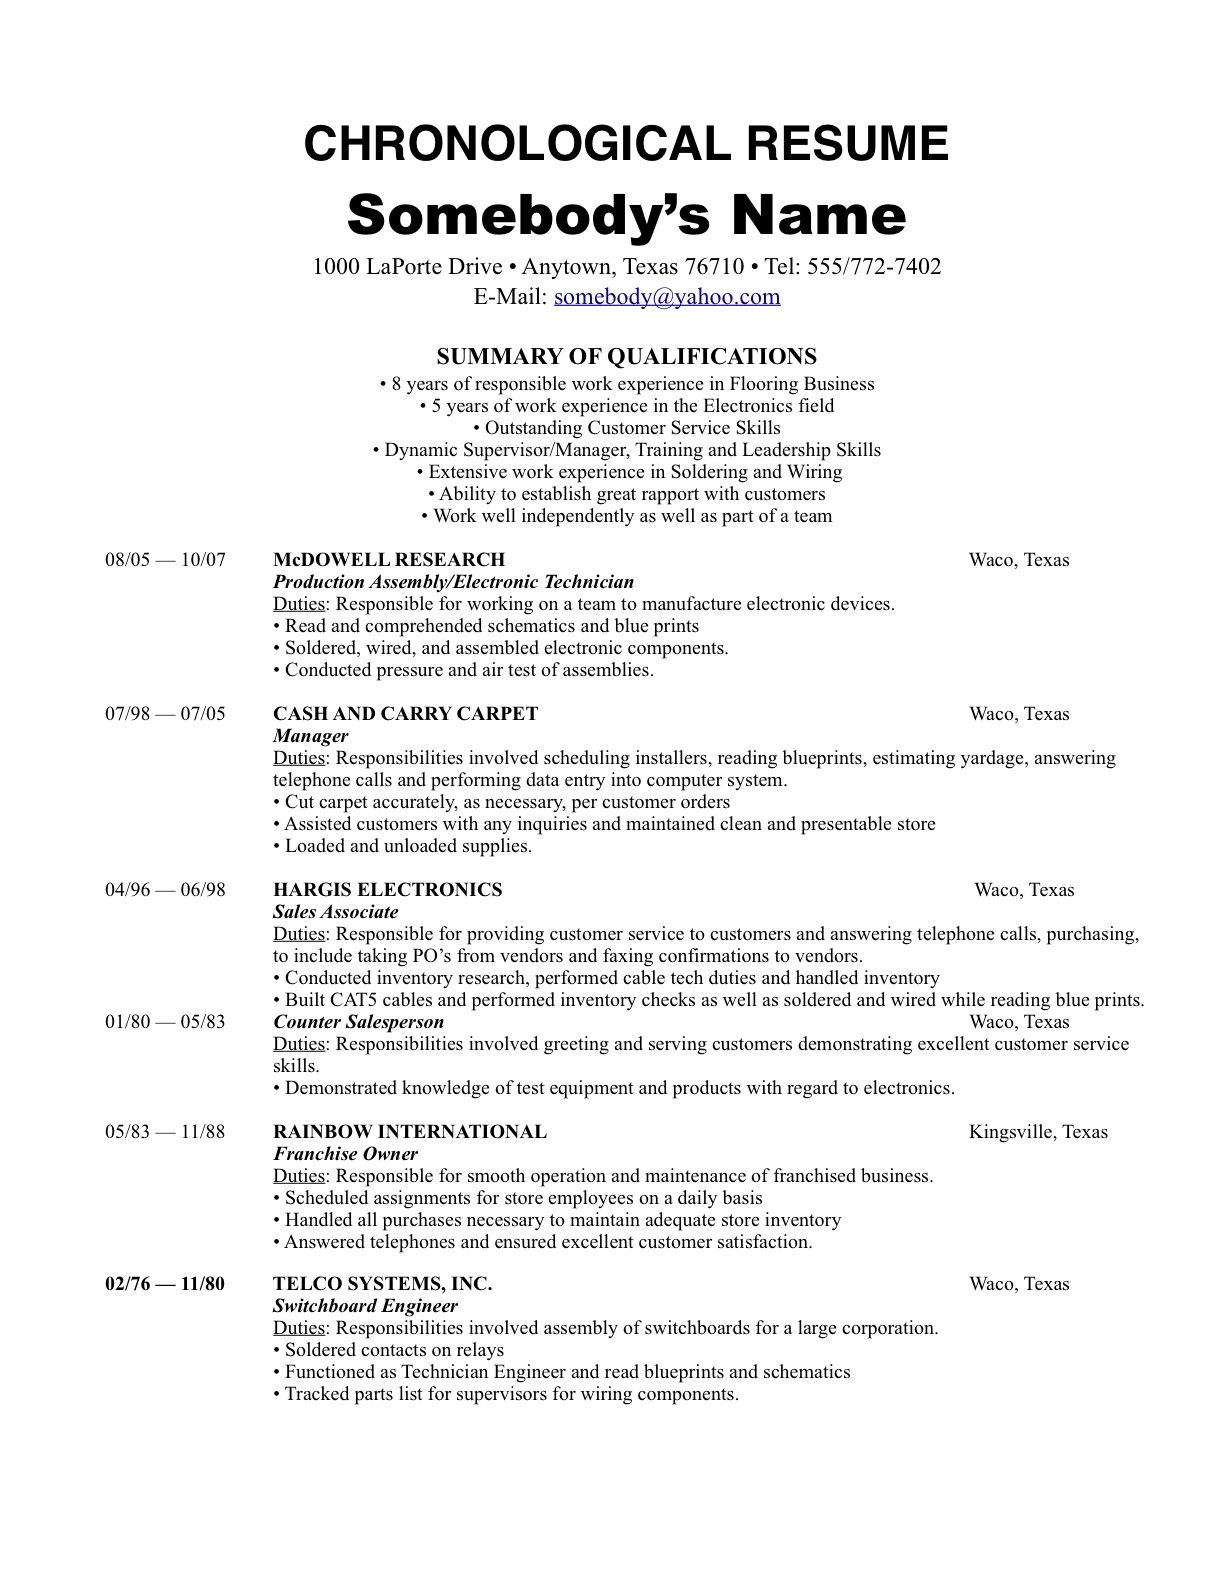 Chronological Order Resume Example DcF The Most Reverse